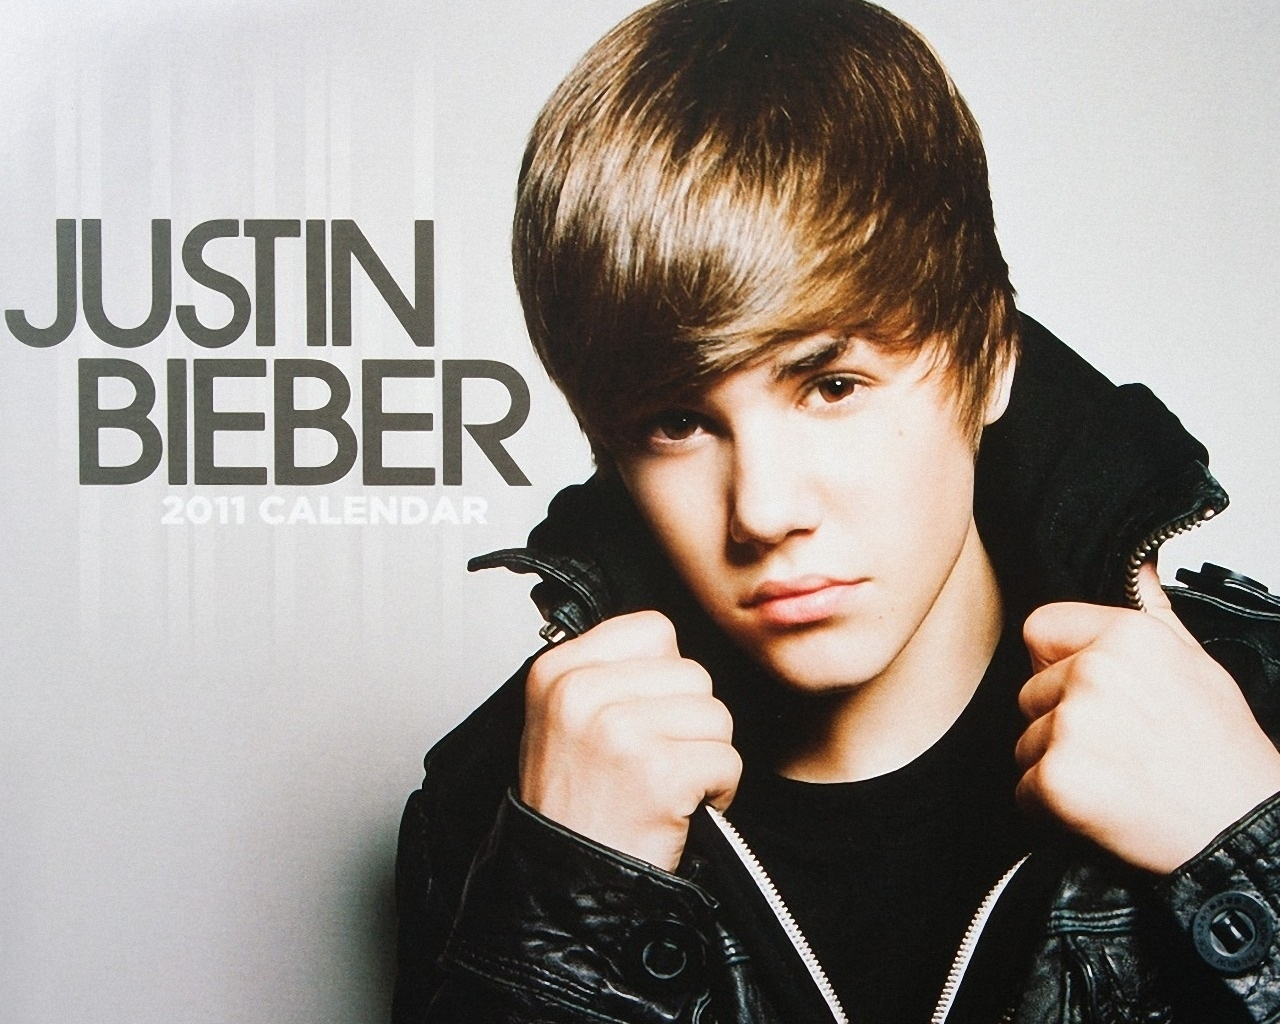 justin bieber wallpaper full hd hd wallpapers pictures | hd